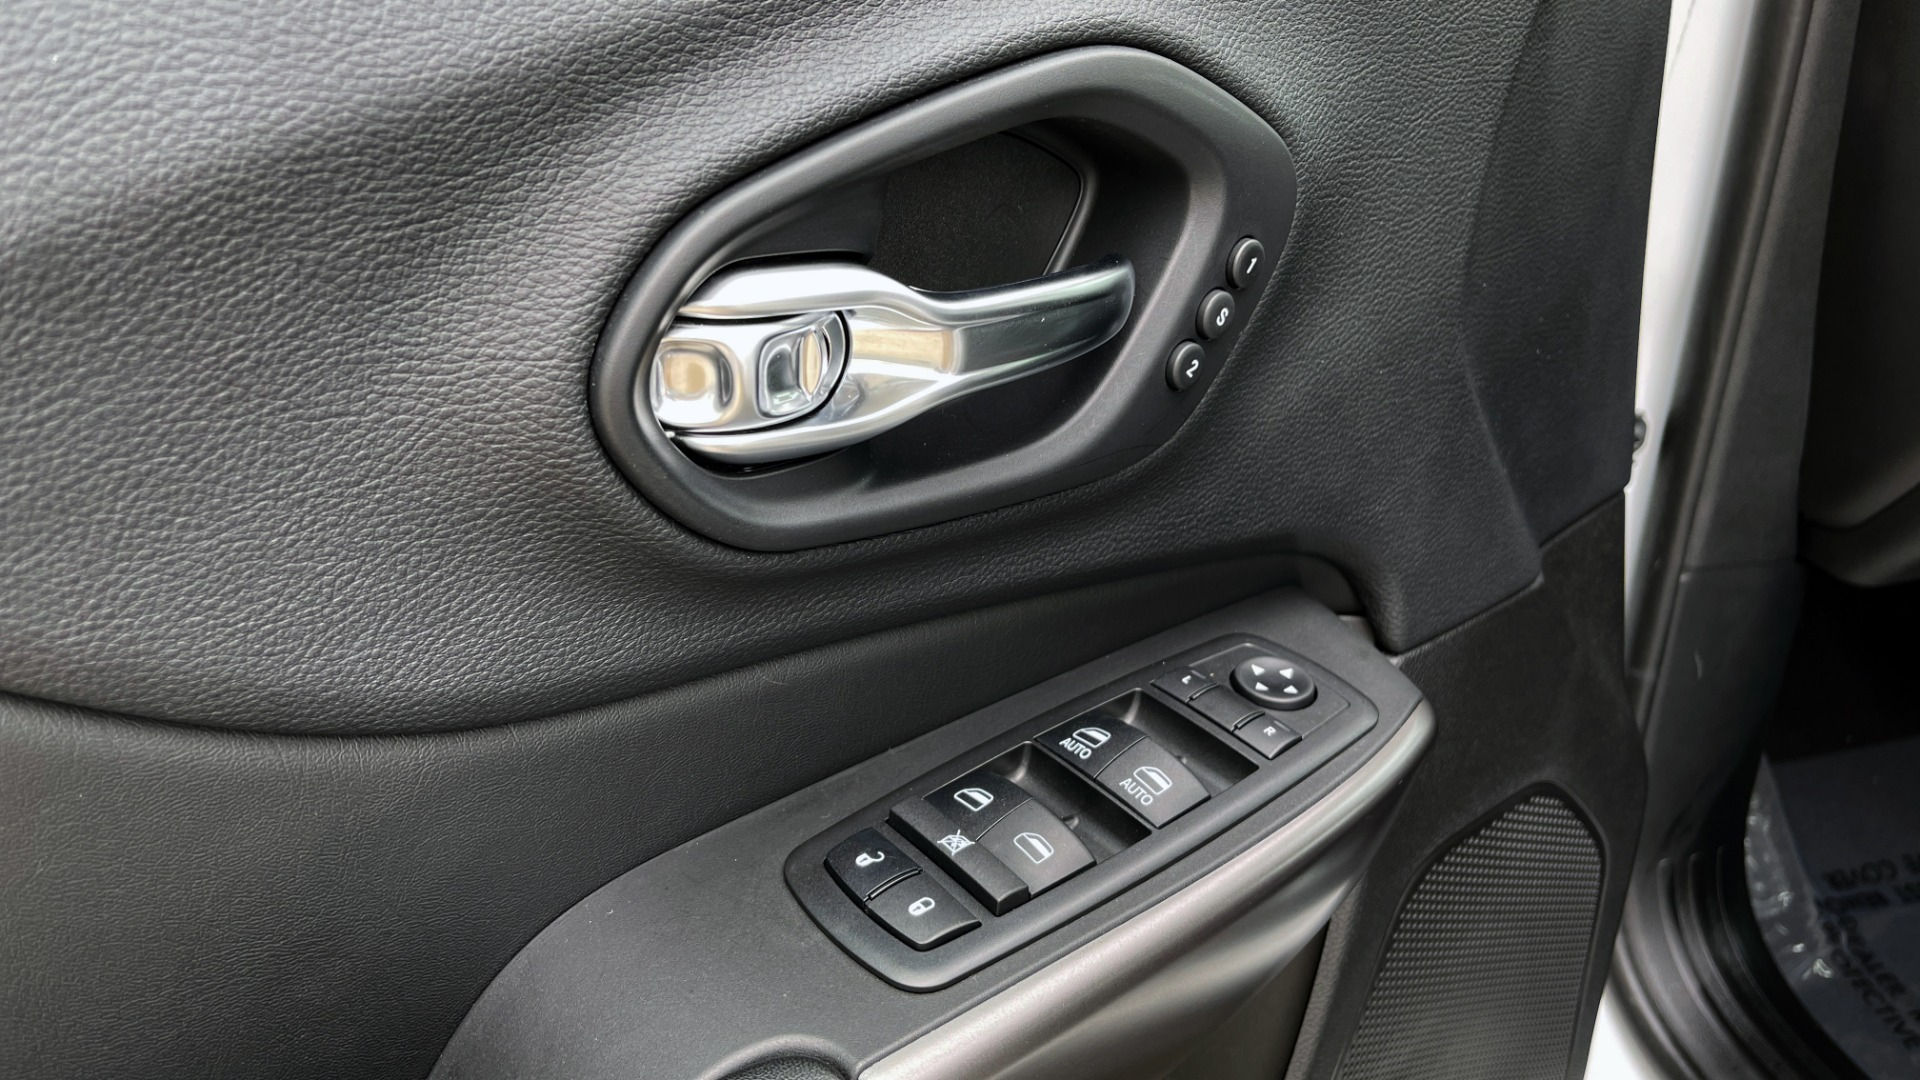 Used 2019 Jeep CHEROKEE LIMITED 4X4 / KEYLESS-GO / BLIND SPOT AND CROSS PATH / REMOTE START / REARV for sale $26,995 at Formula Imports in Charlotte NC 28227 30